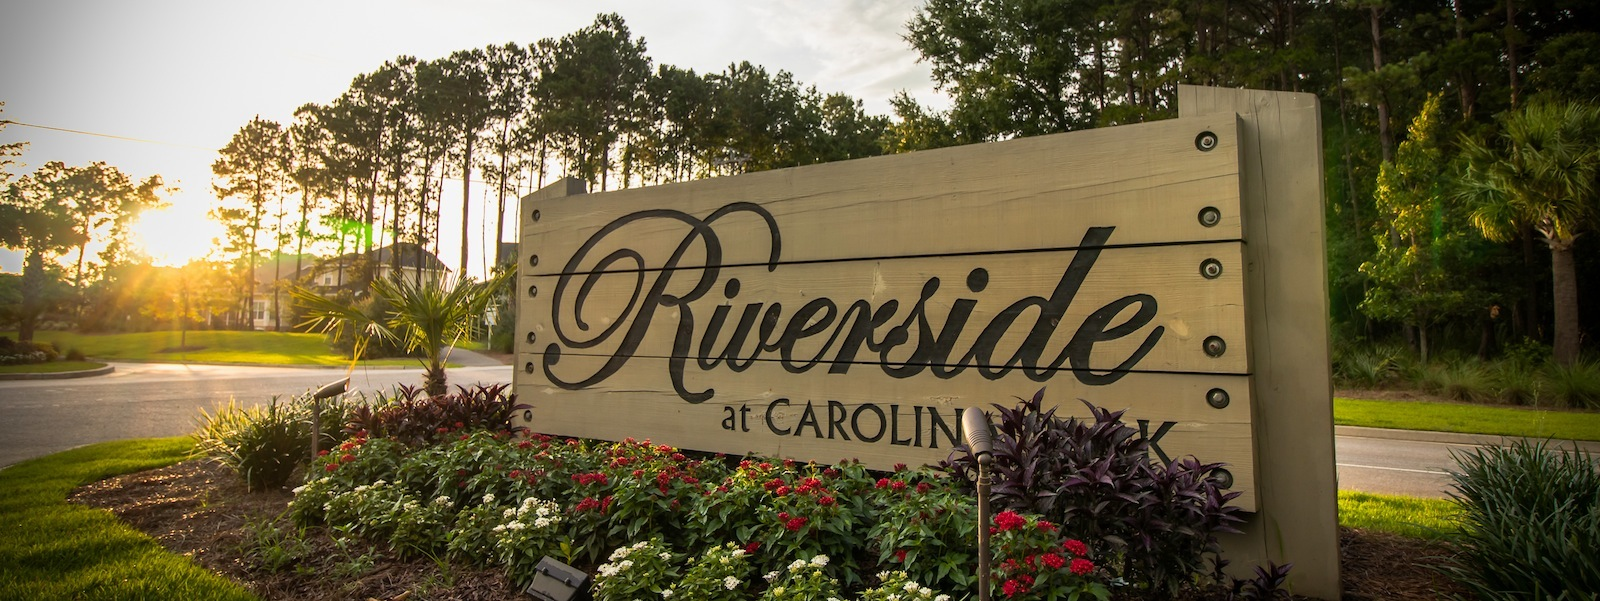 84_Riverside_Sign_FULL.jpg